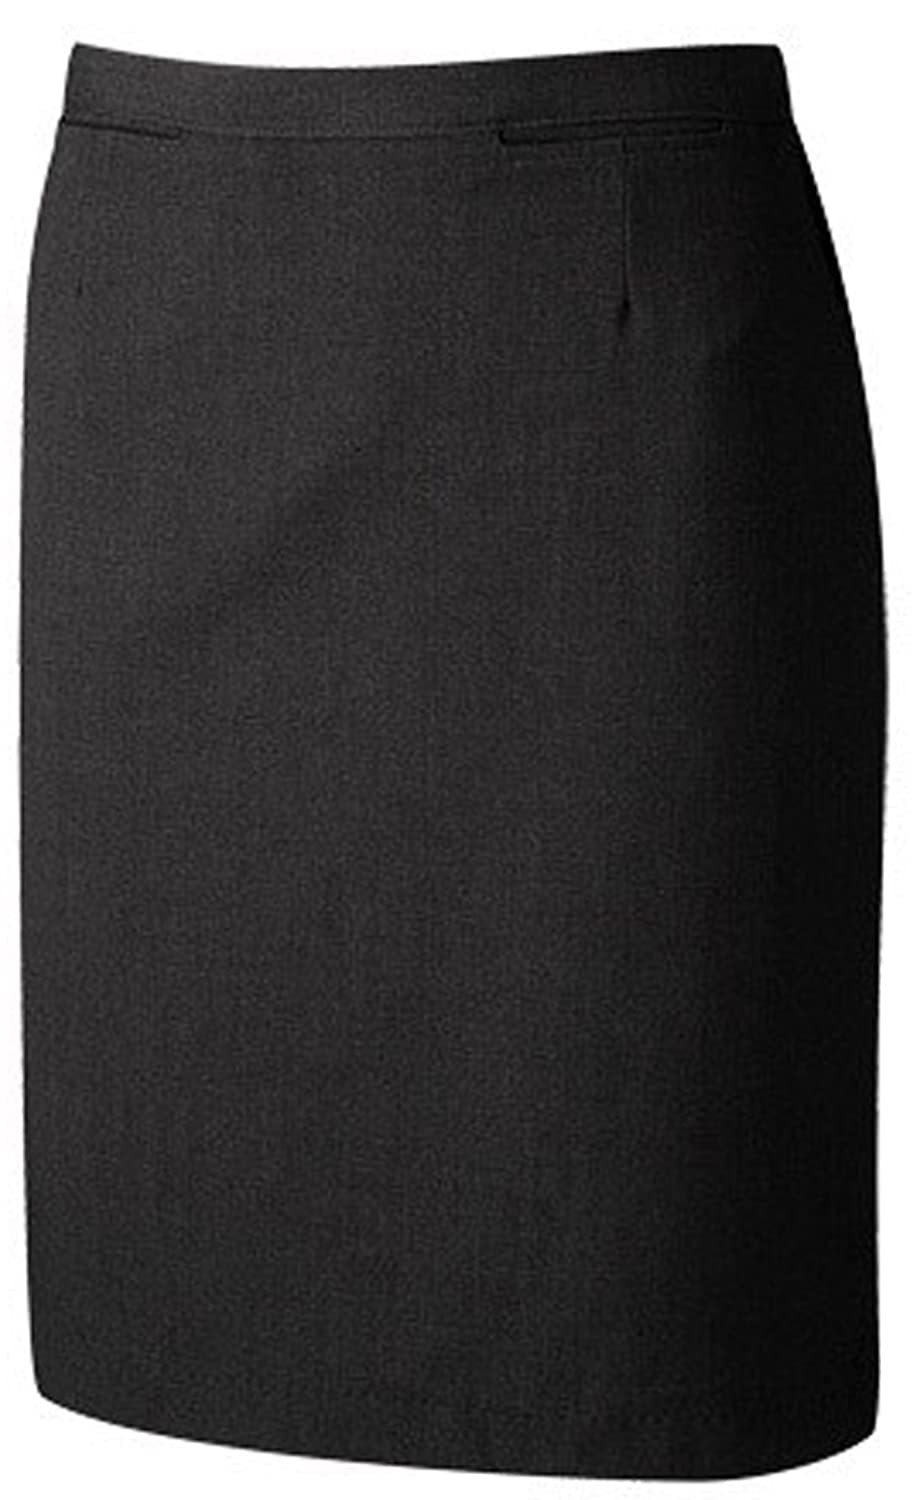 Banner Luton Straight Skirt Black / Grey / Navy. Waists from 22-40 ...